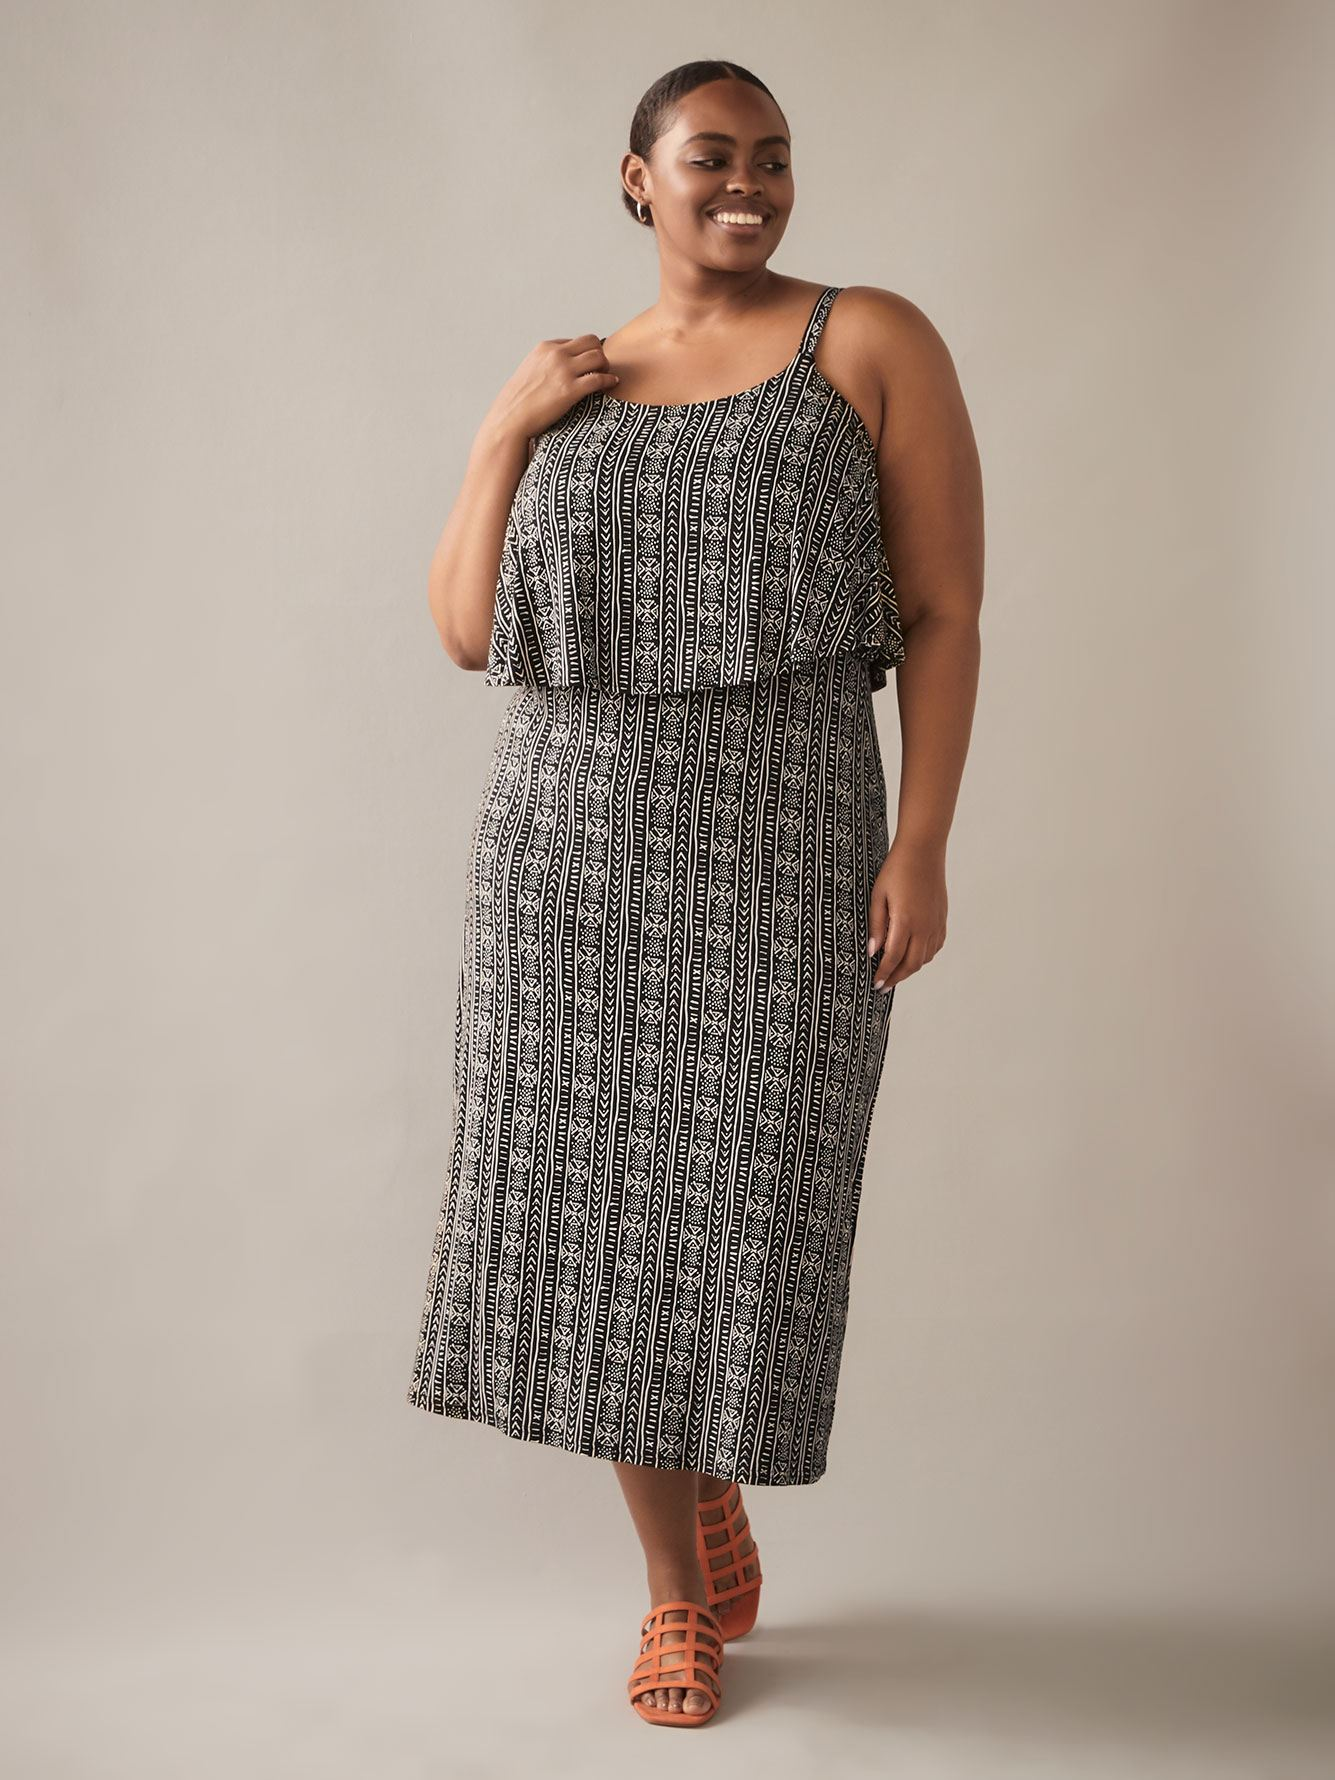 Printed Maxi Dress with Overlay Top - In Every Story